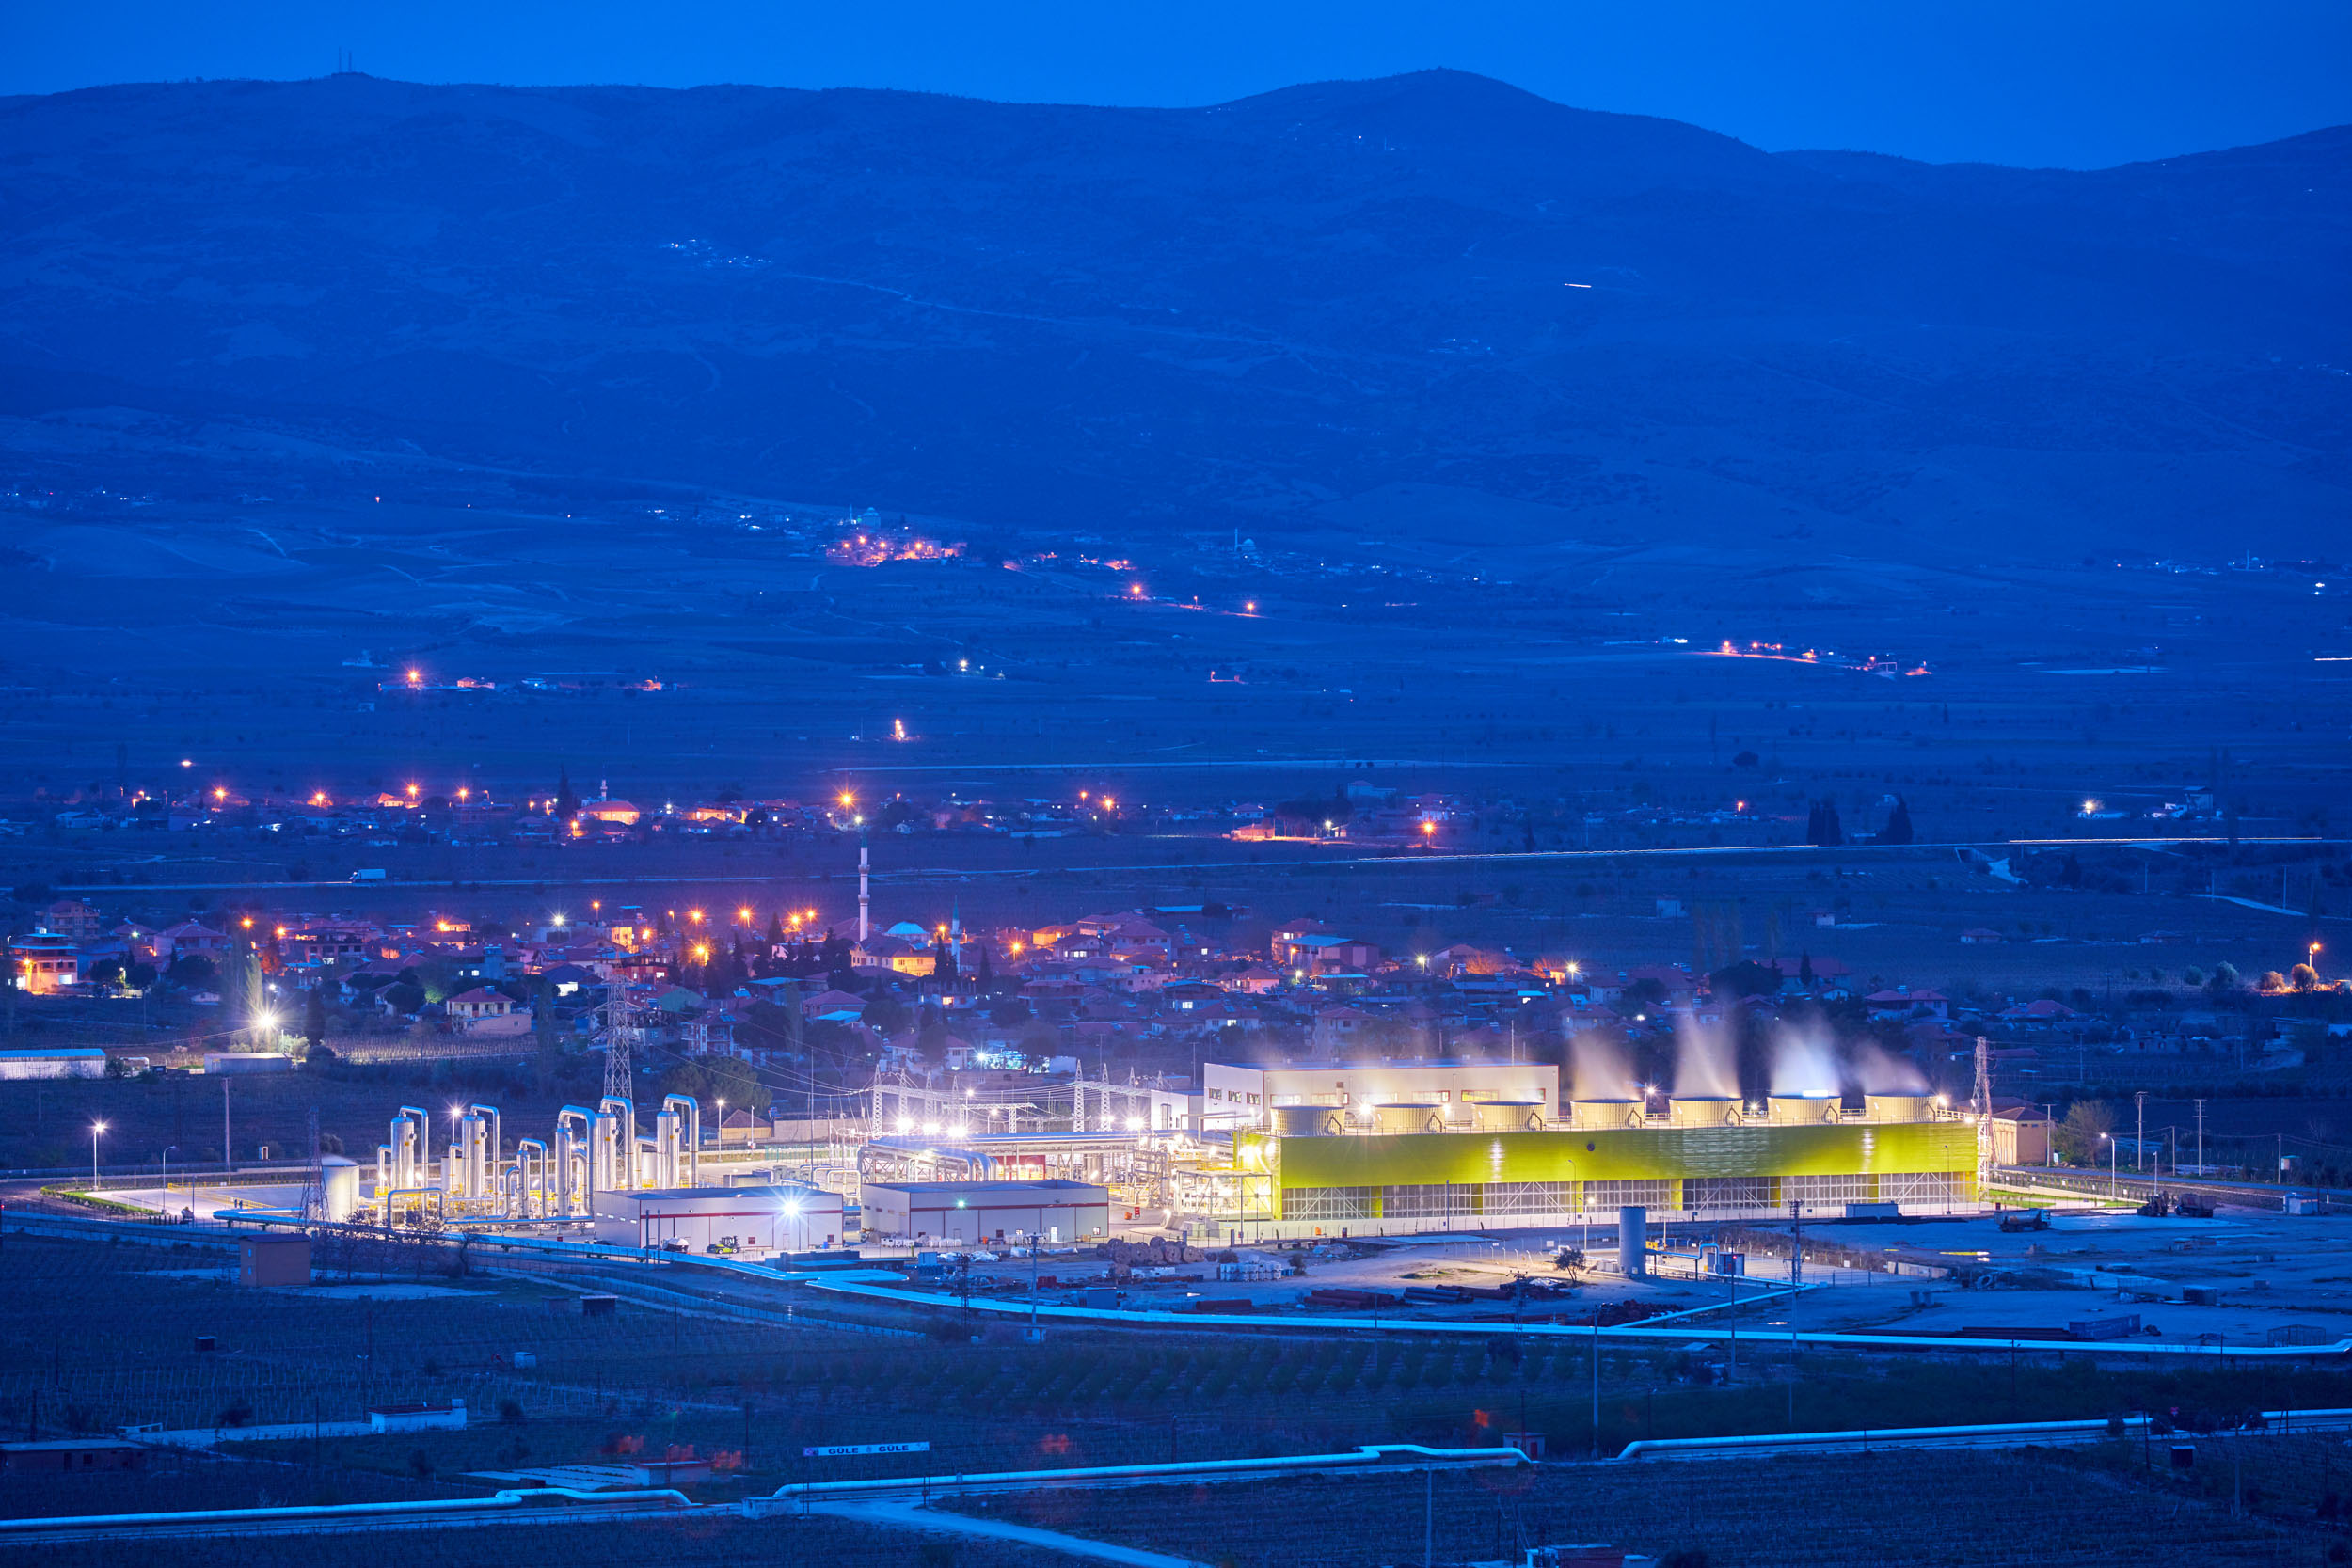 Nighttime photo of the Alaşehir geothermal power plant in Turkey